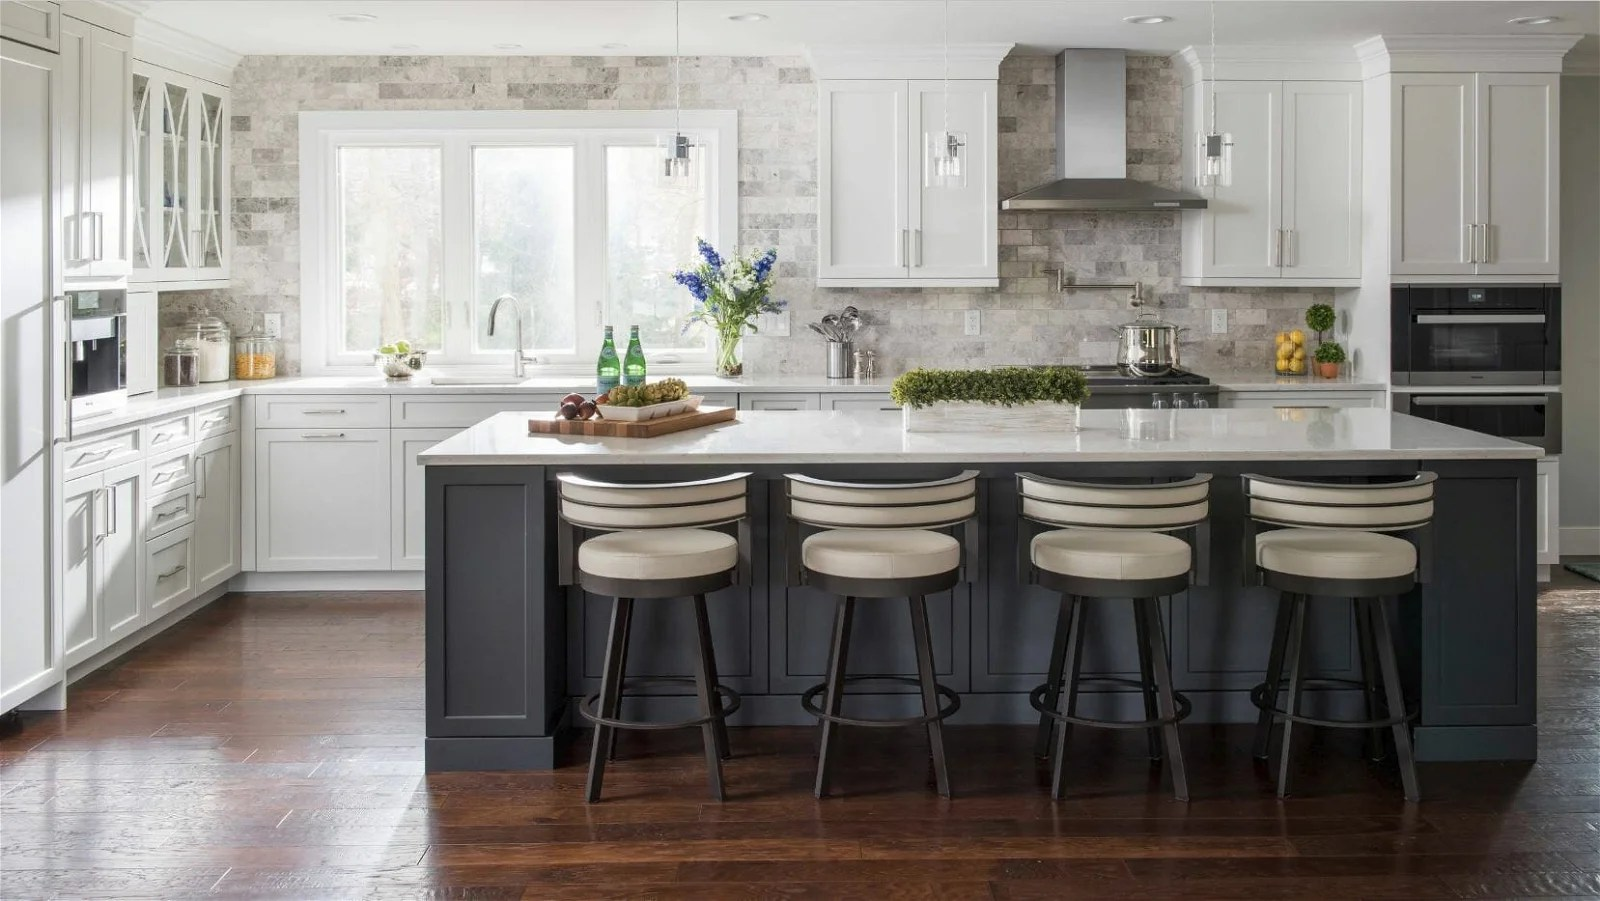 Think of the kitchens delivered by block teams luke & jasmin or daniel & jade. Kitchen Design Trends 2021 Top 7 Kitchen Design Ideas That Are Here